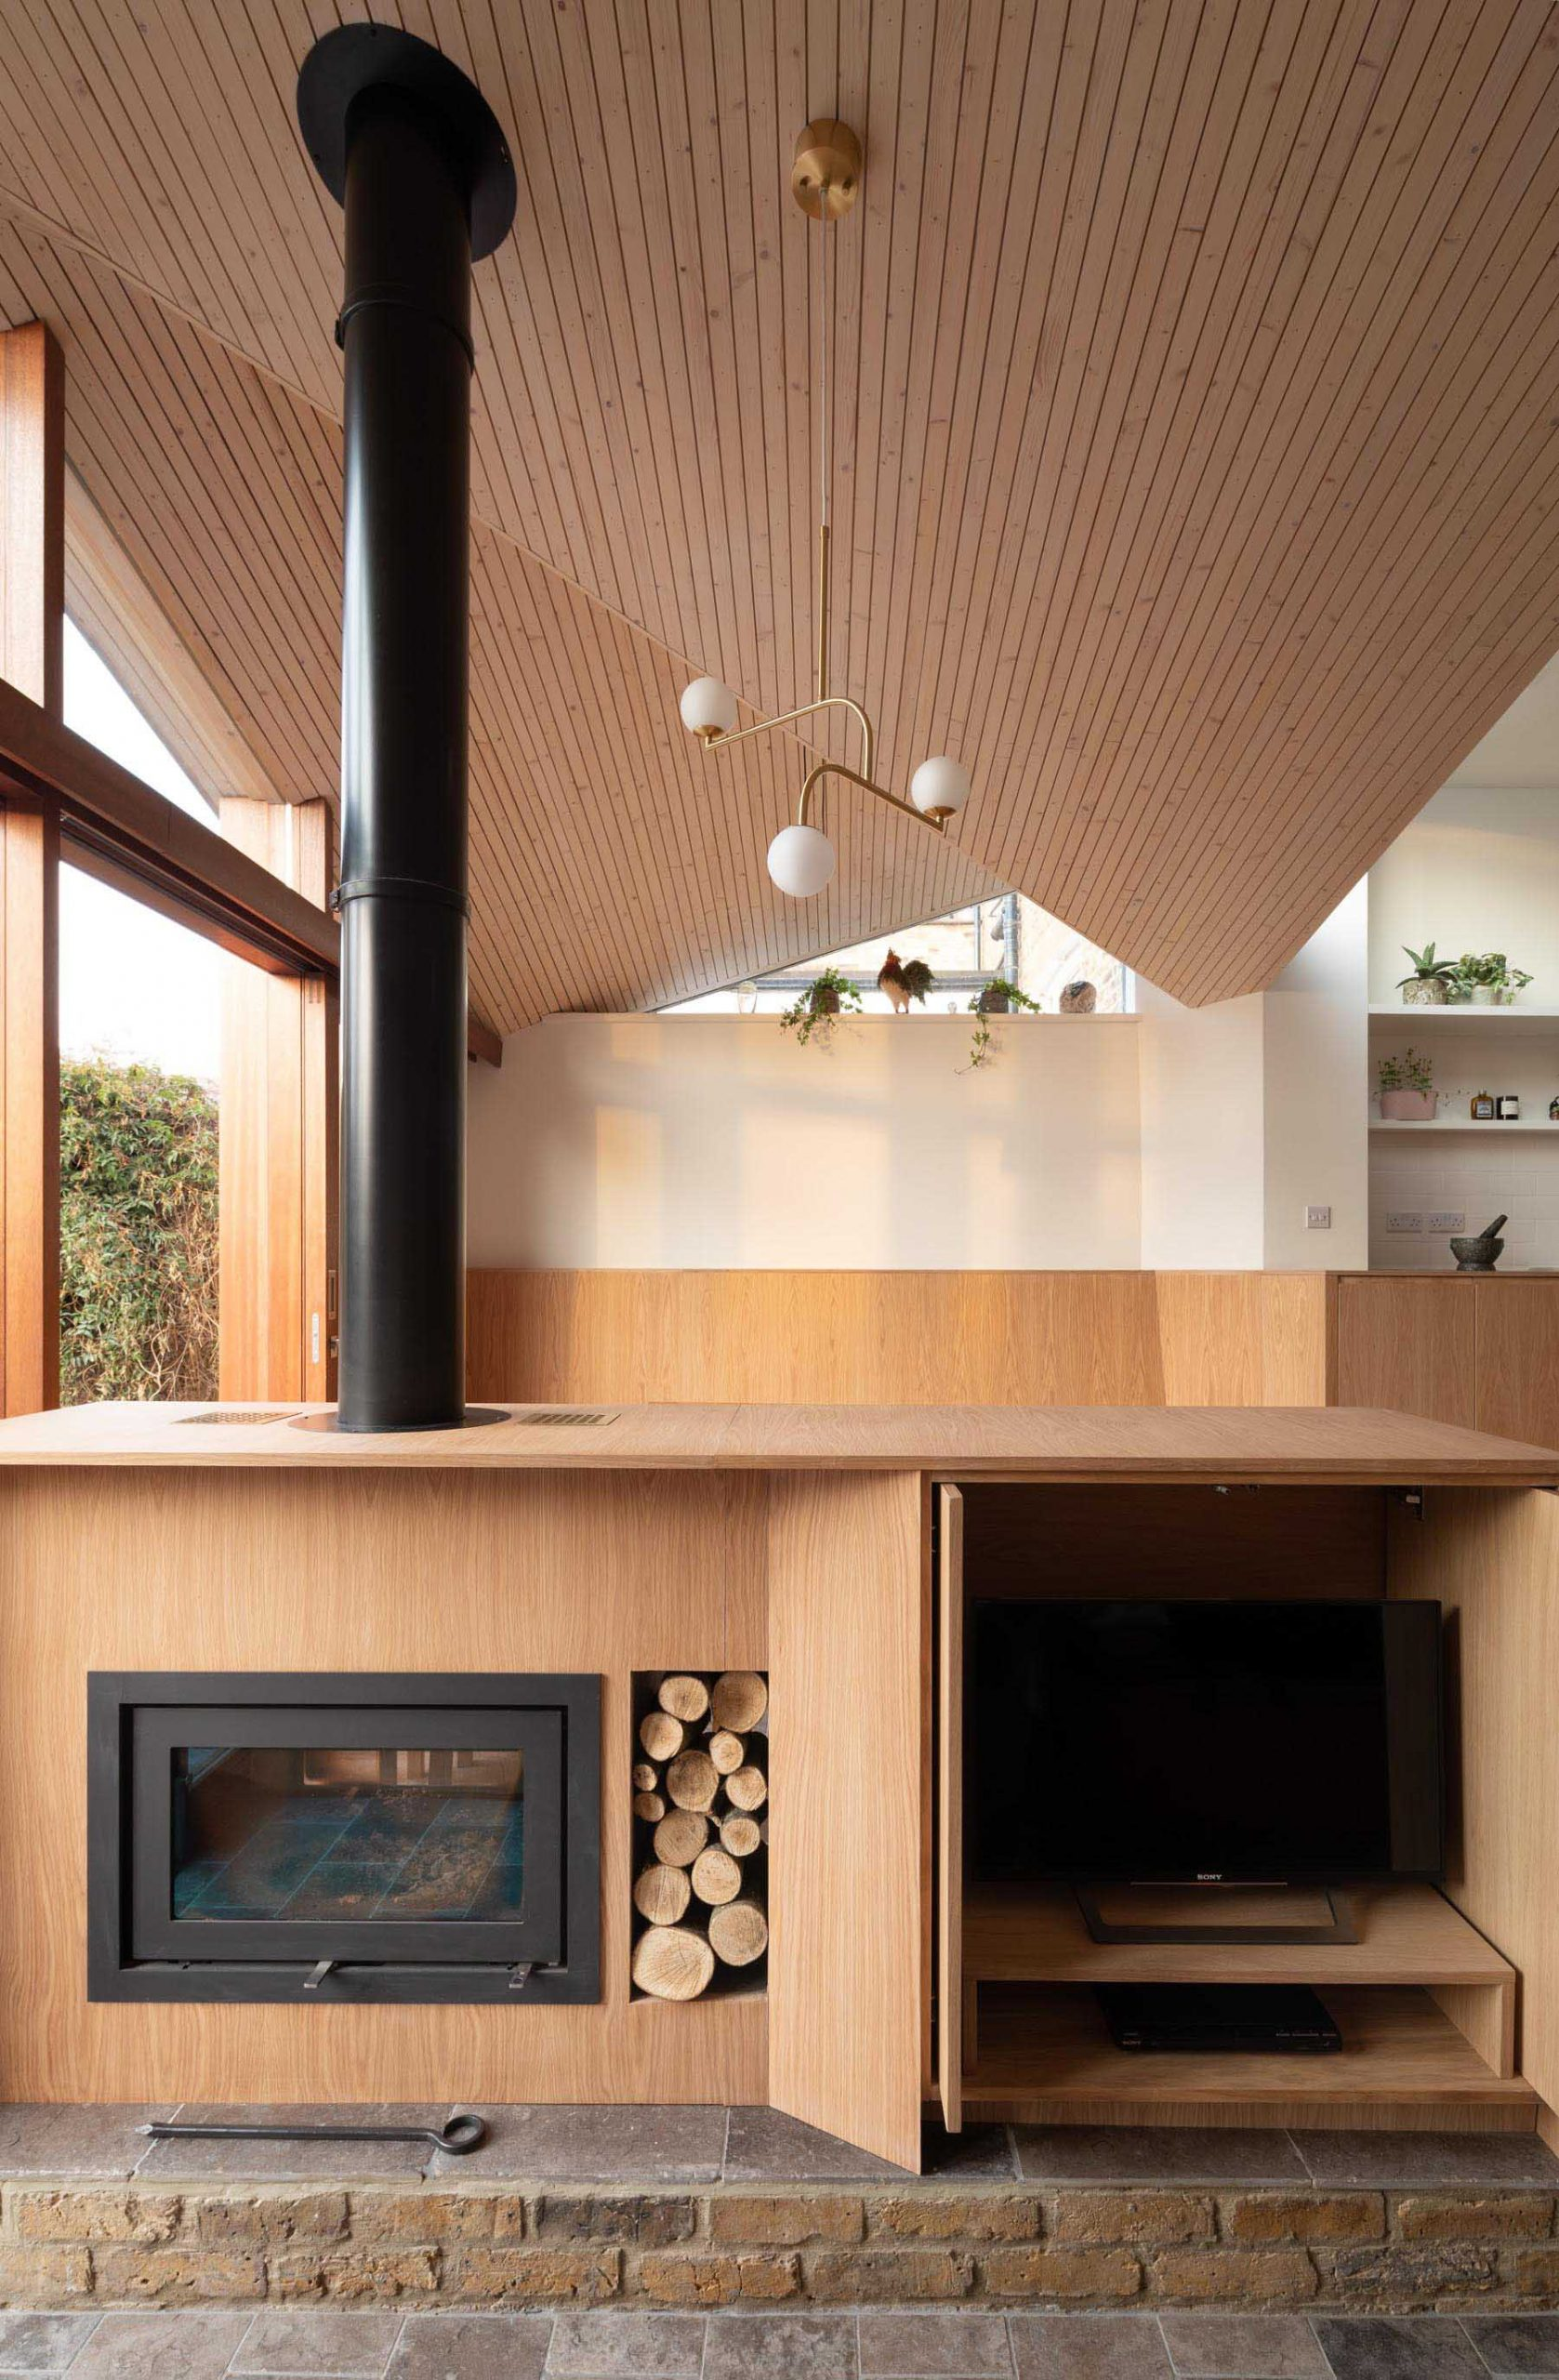 A modern interior with a fireplace and TV hidden within a cabinet.